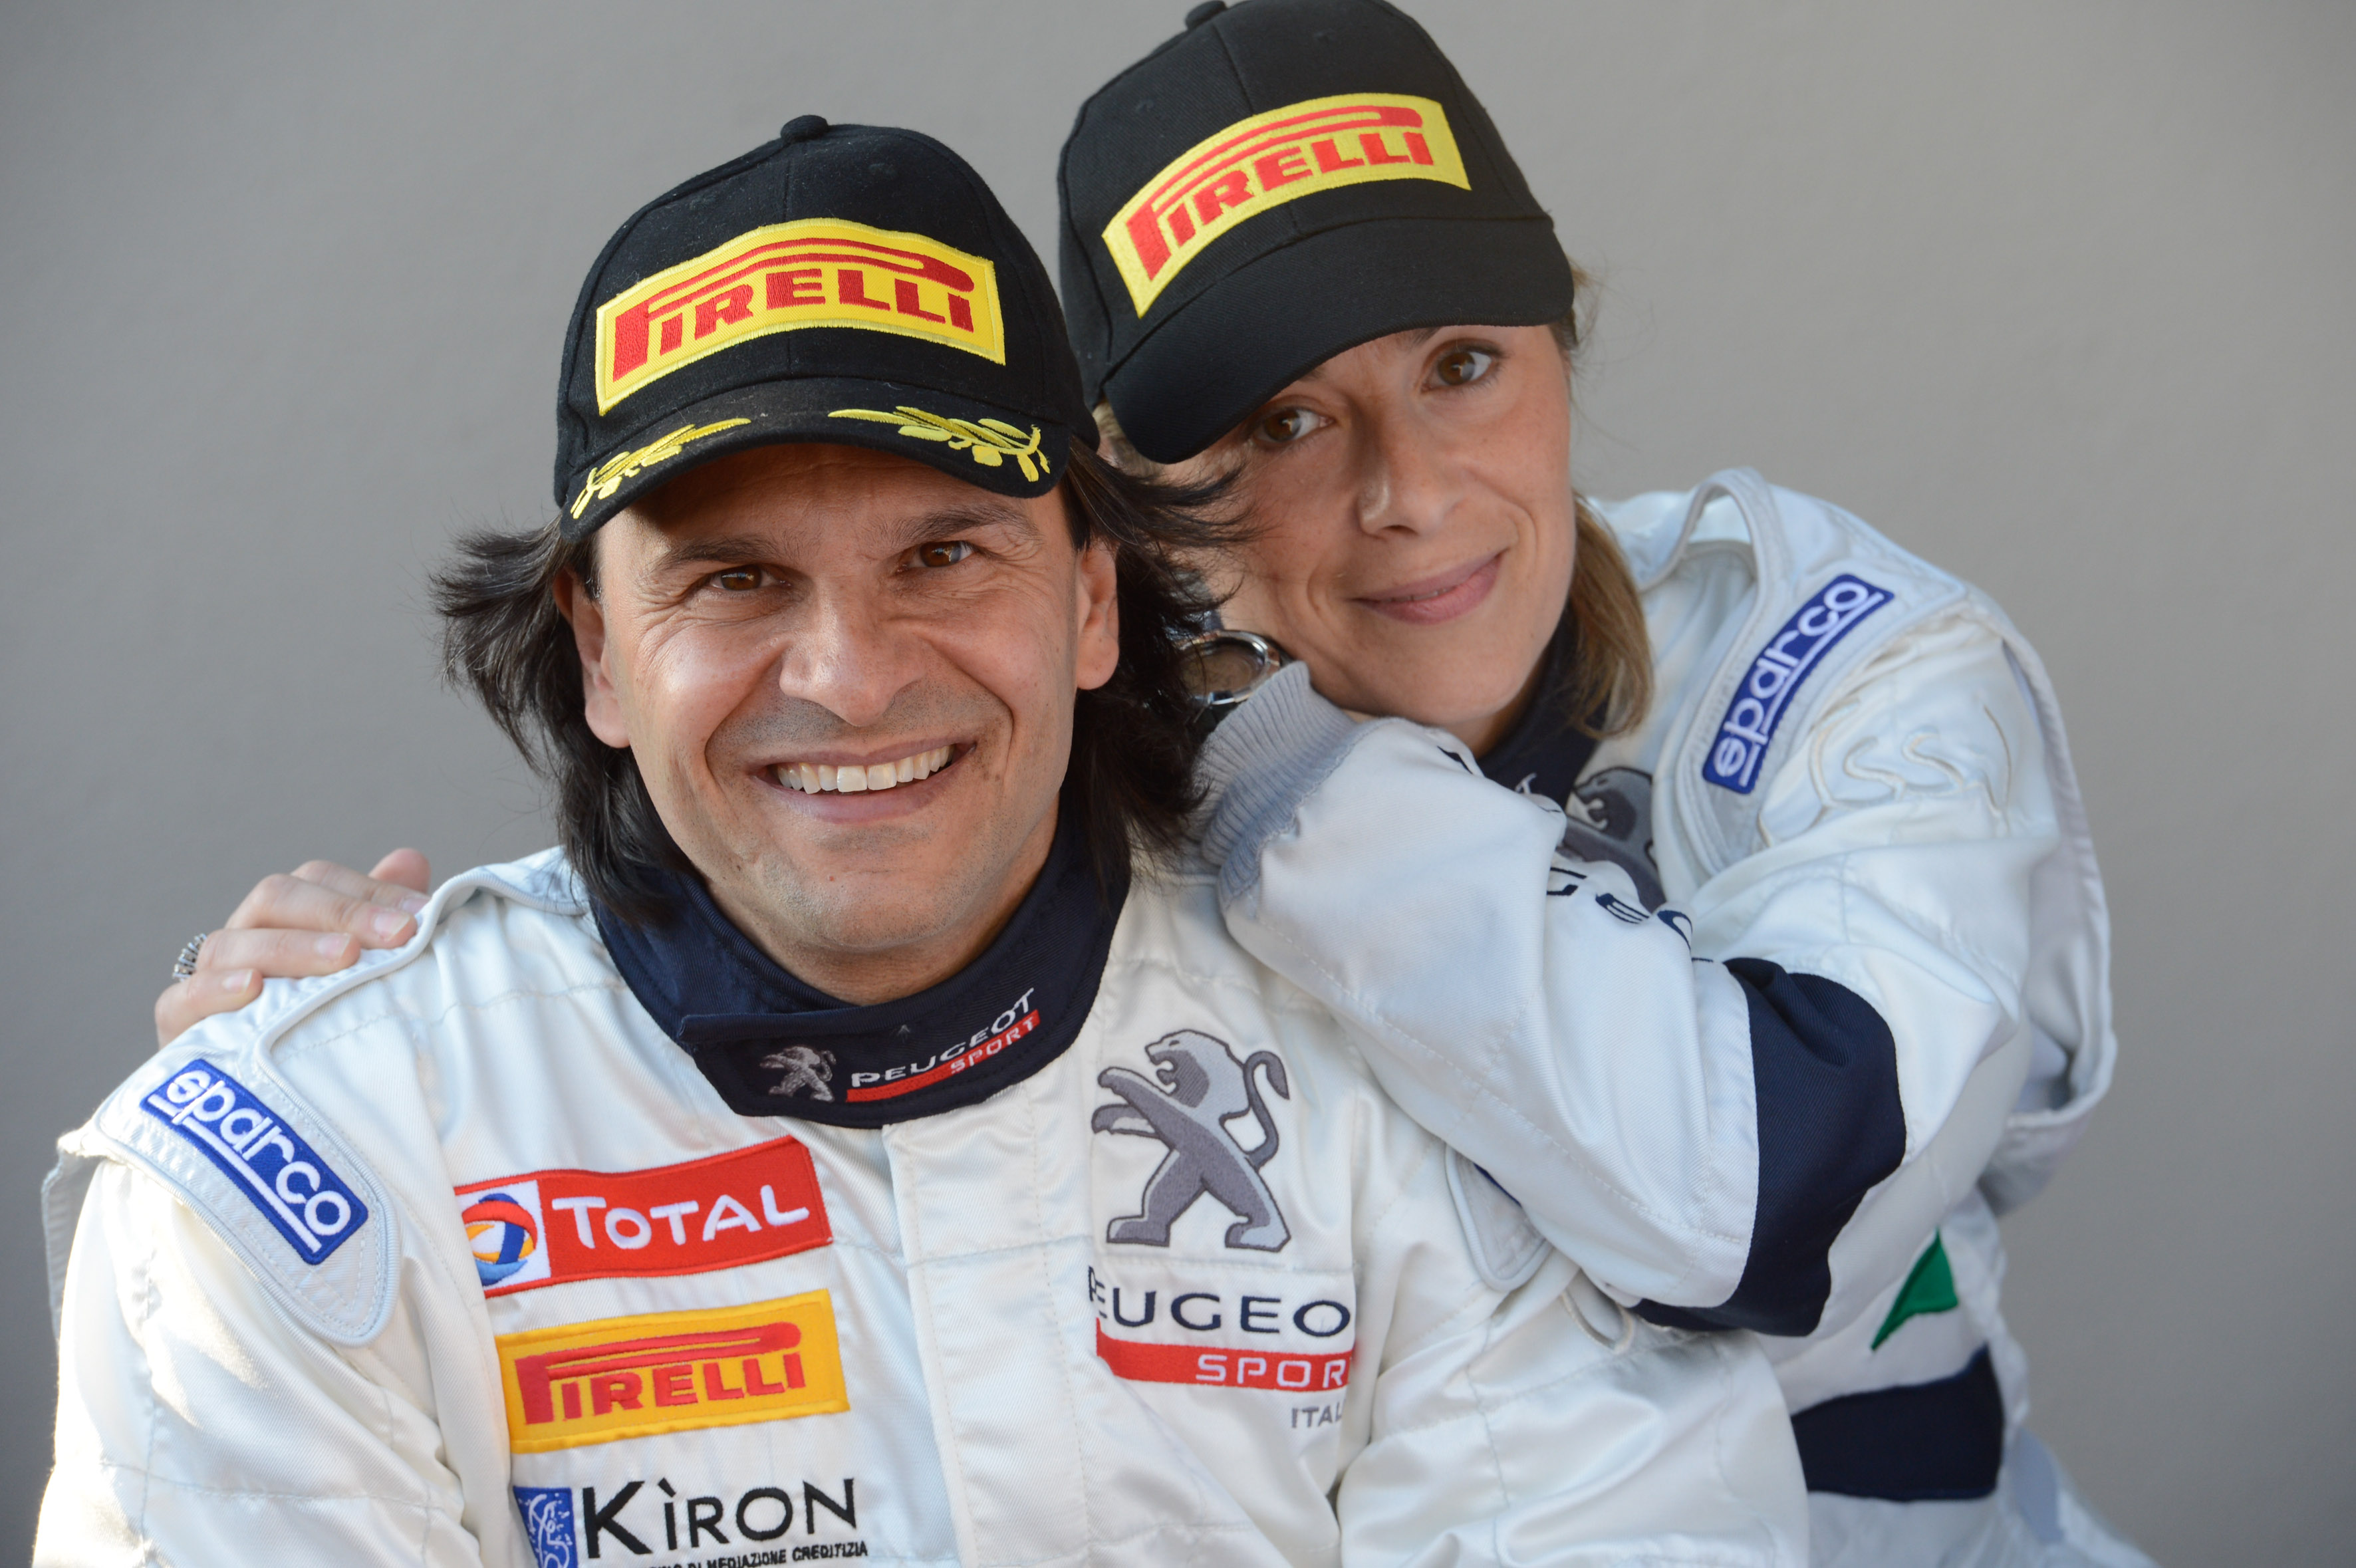 Incidente alla Targa Florio, Gemma Amendolia in coma farmacologico